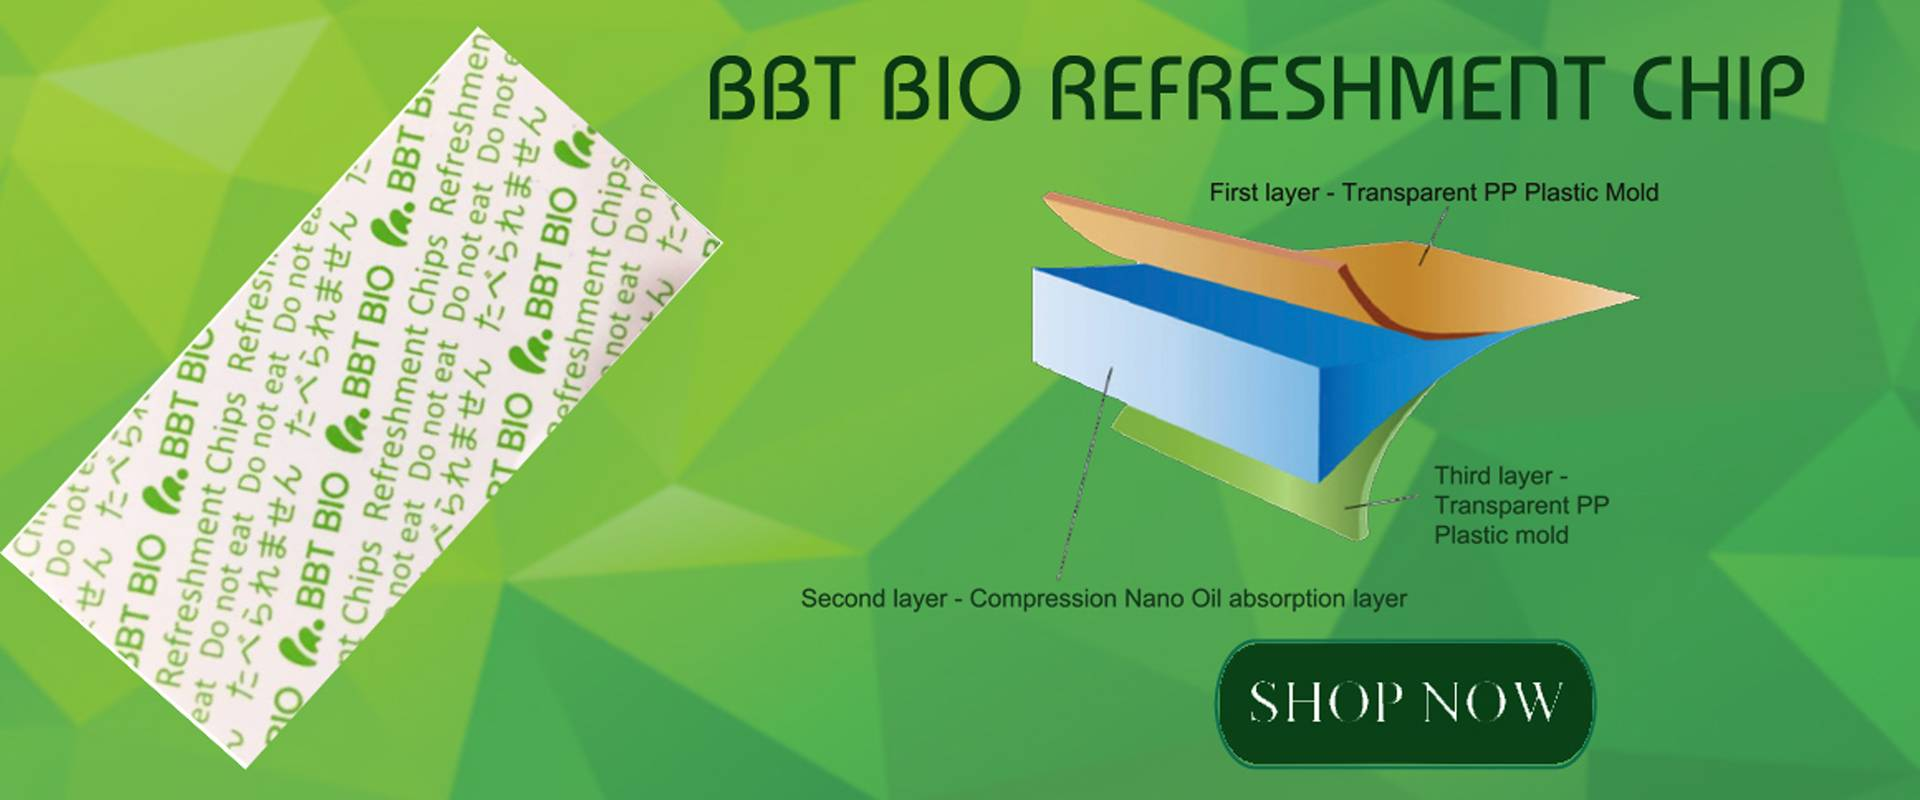 bbt bio refreshment chip